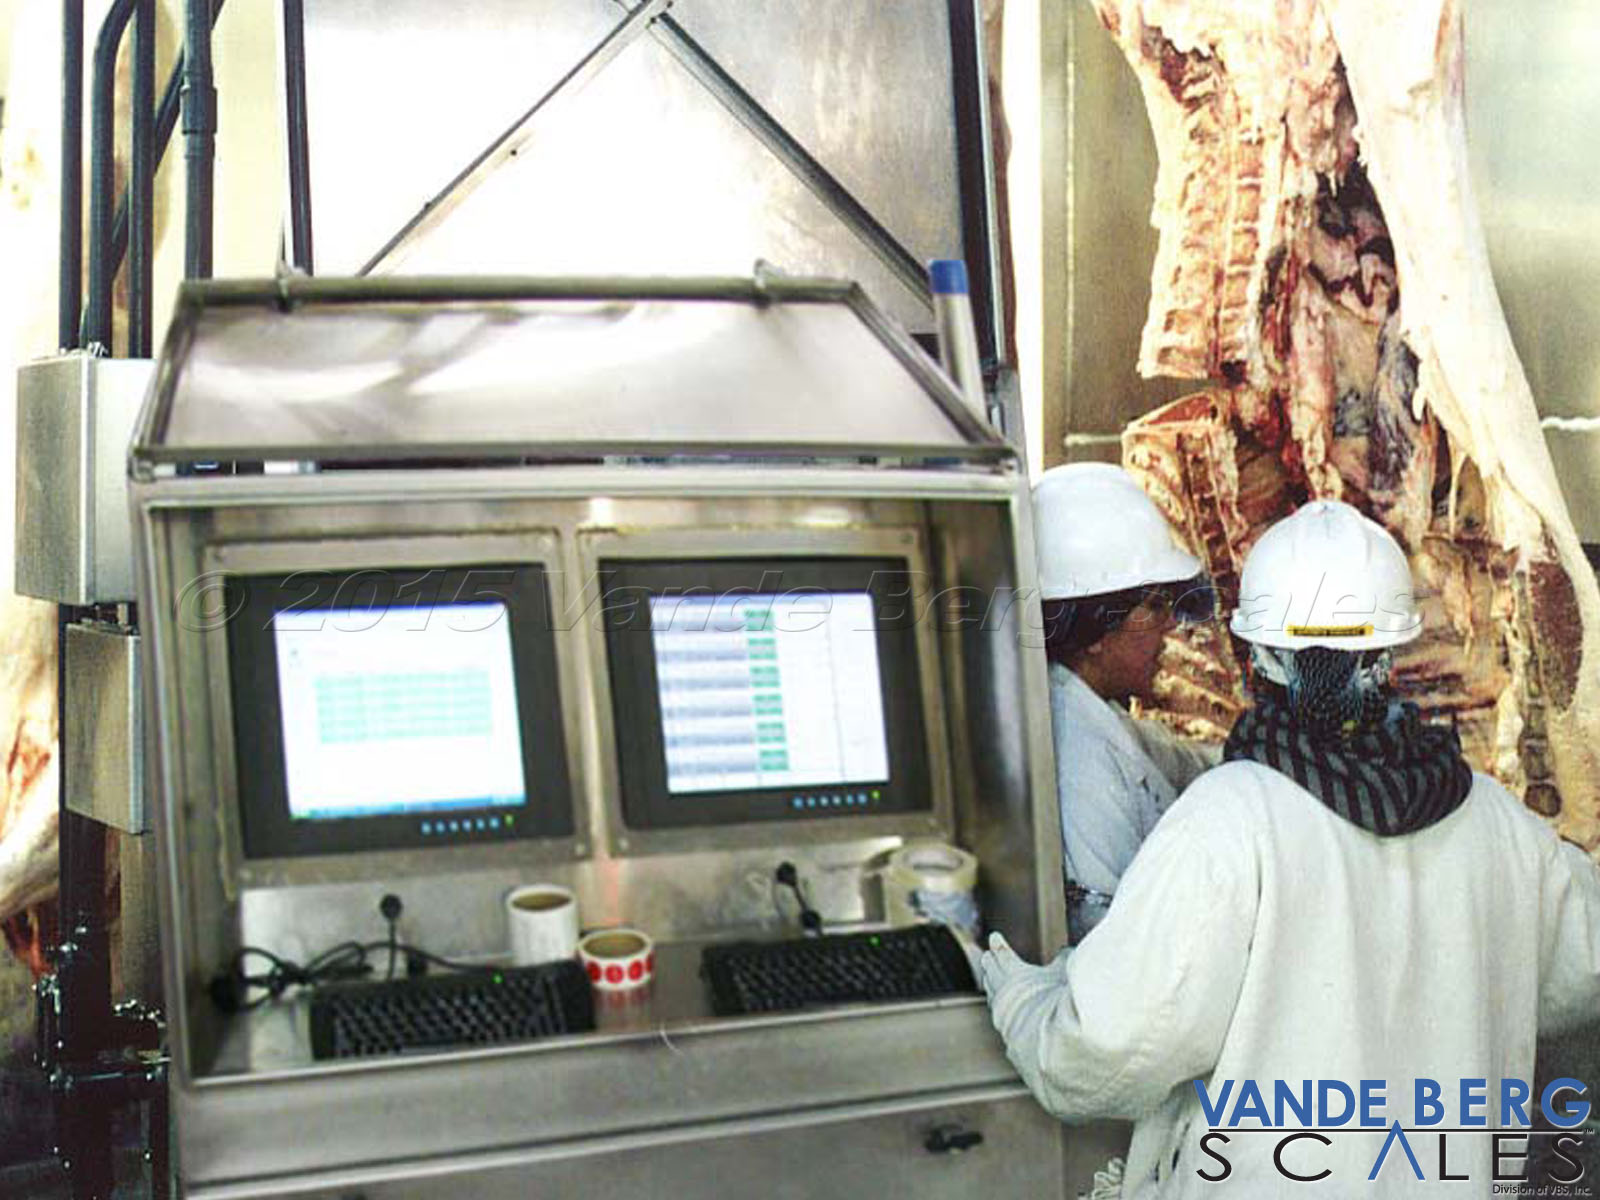 Our industrial touchscreens can withstand the harsh washdown environments of slaughterhouses and harvesting facilities.